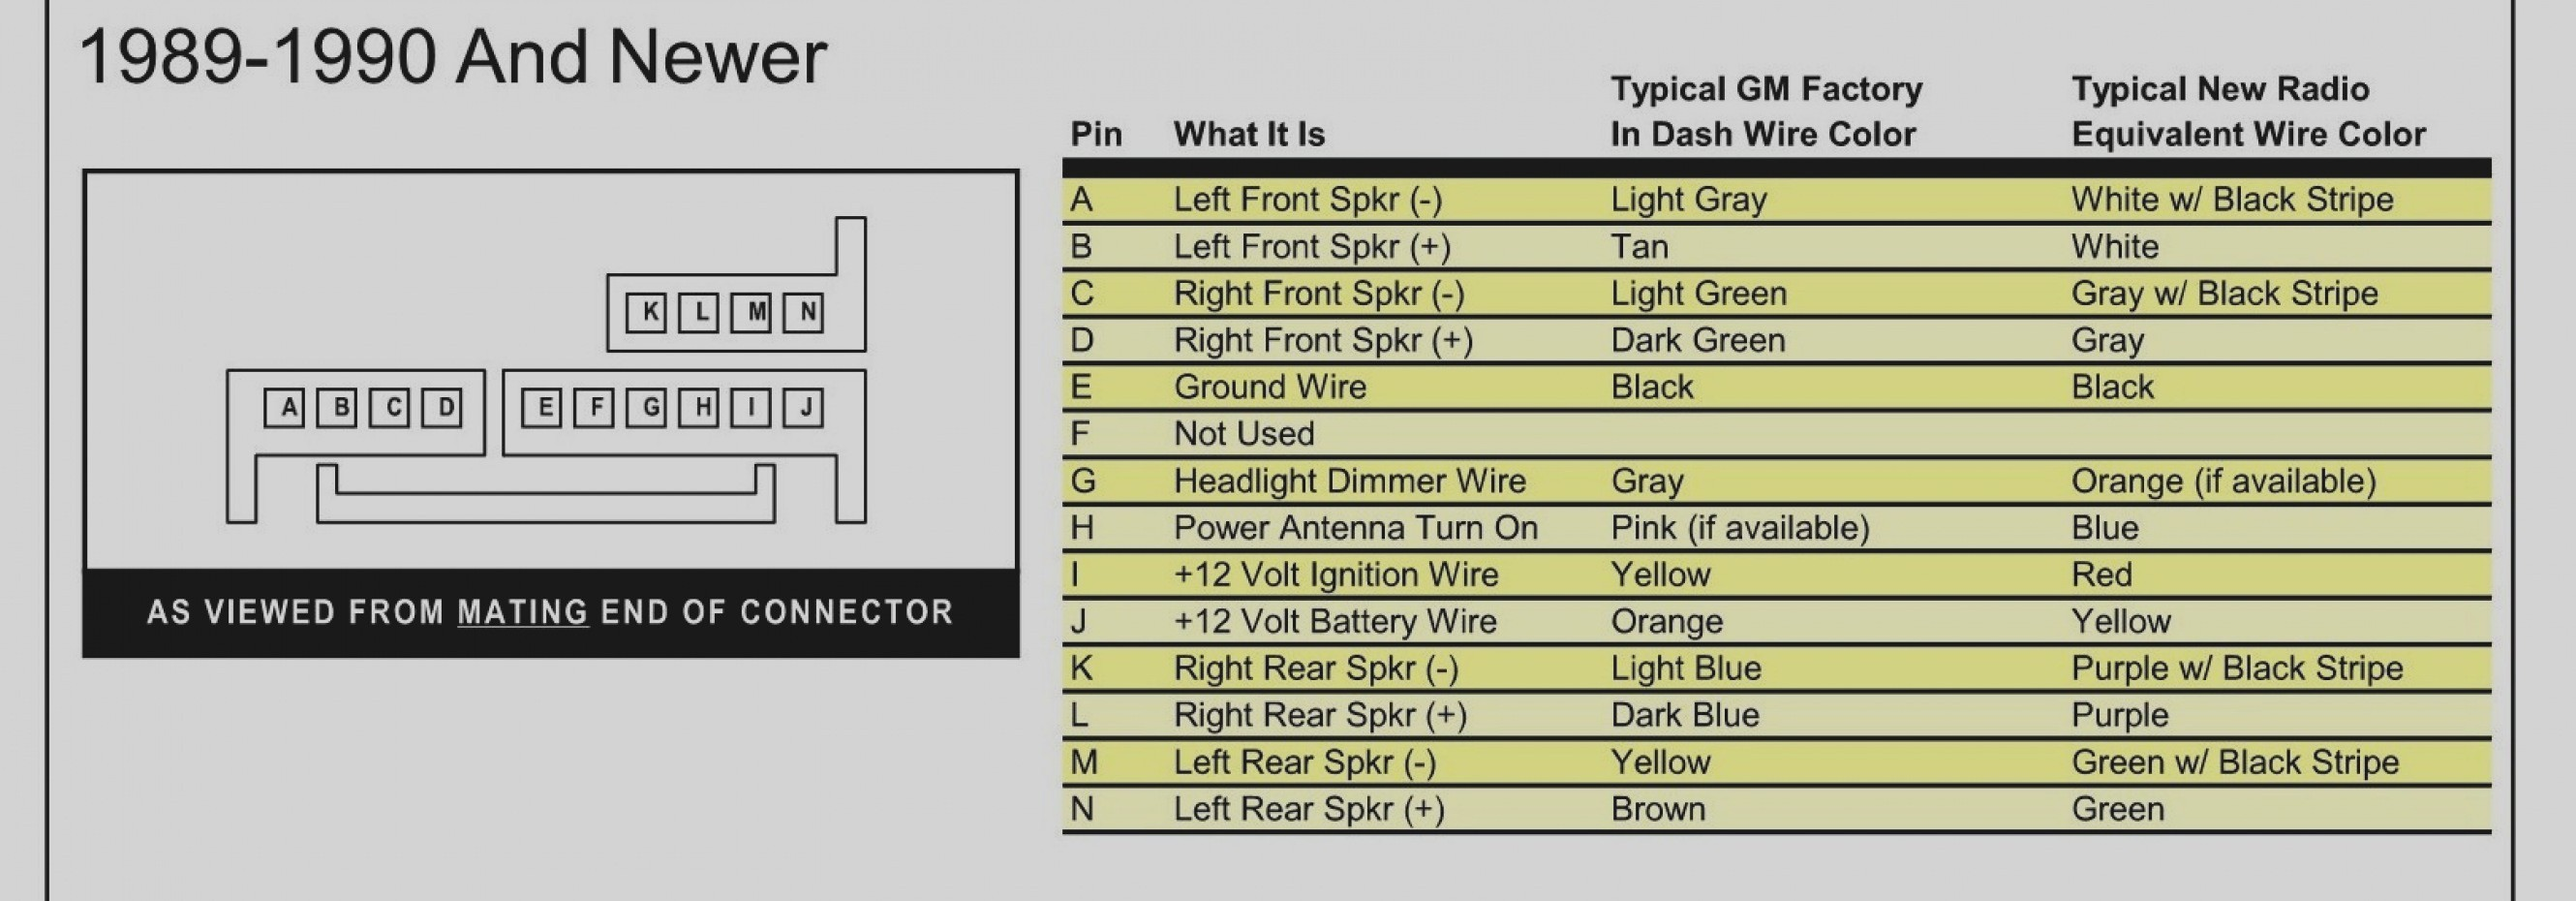 2001 Chevy S10 Radio Wiring Diagram from static-cdn.imageservice.cloud